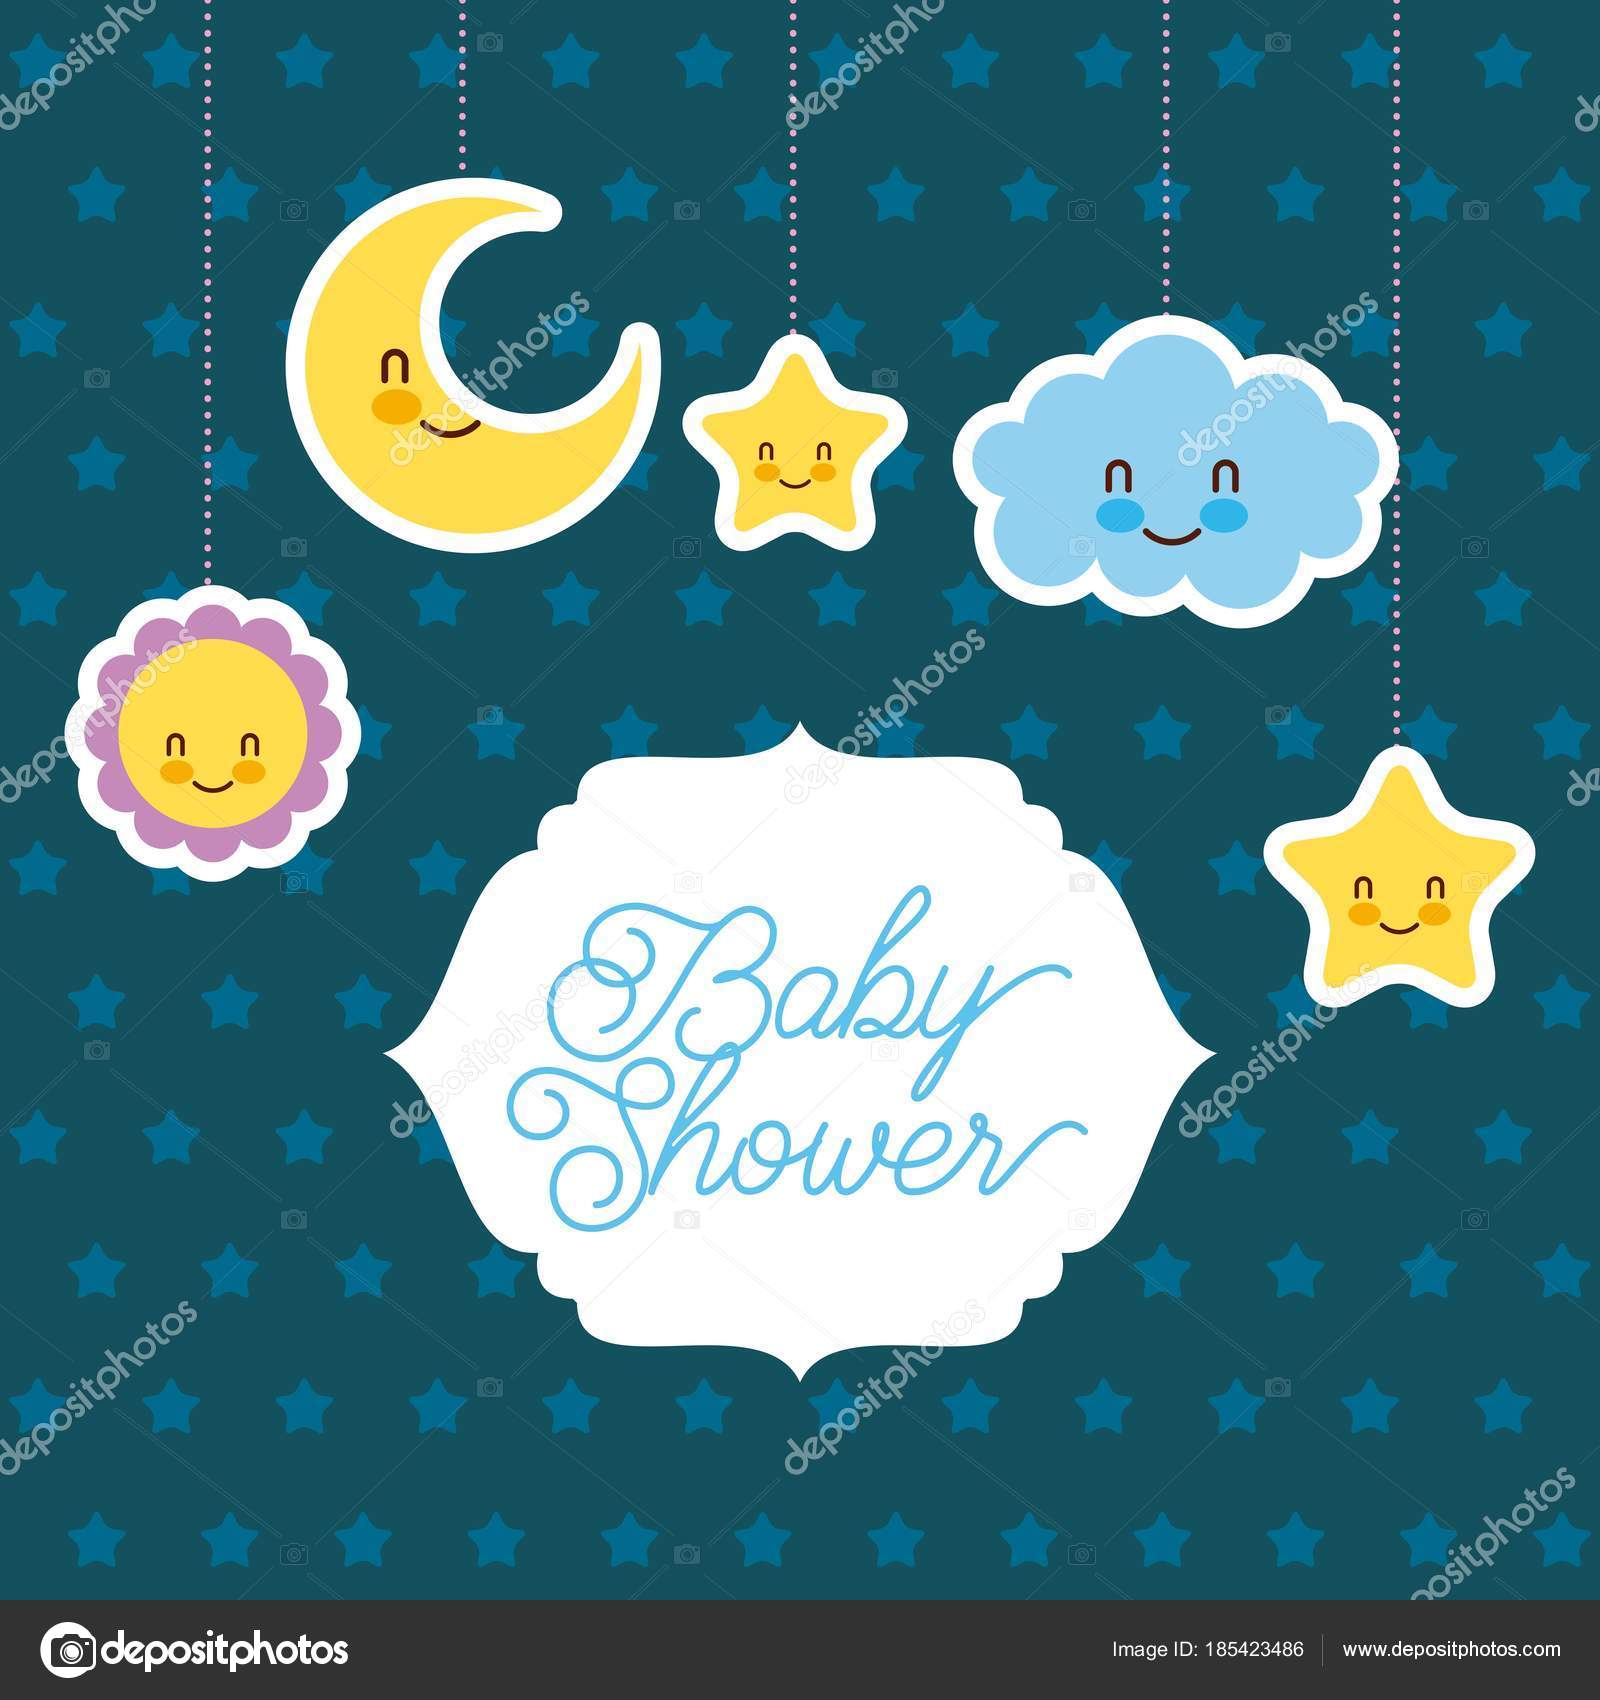 Baby Shower Card Greeting Cartoon Cloud Star Sun Moon Stock Vector